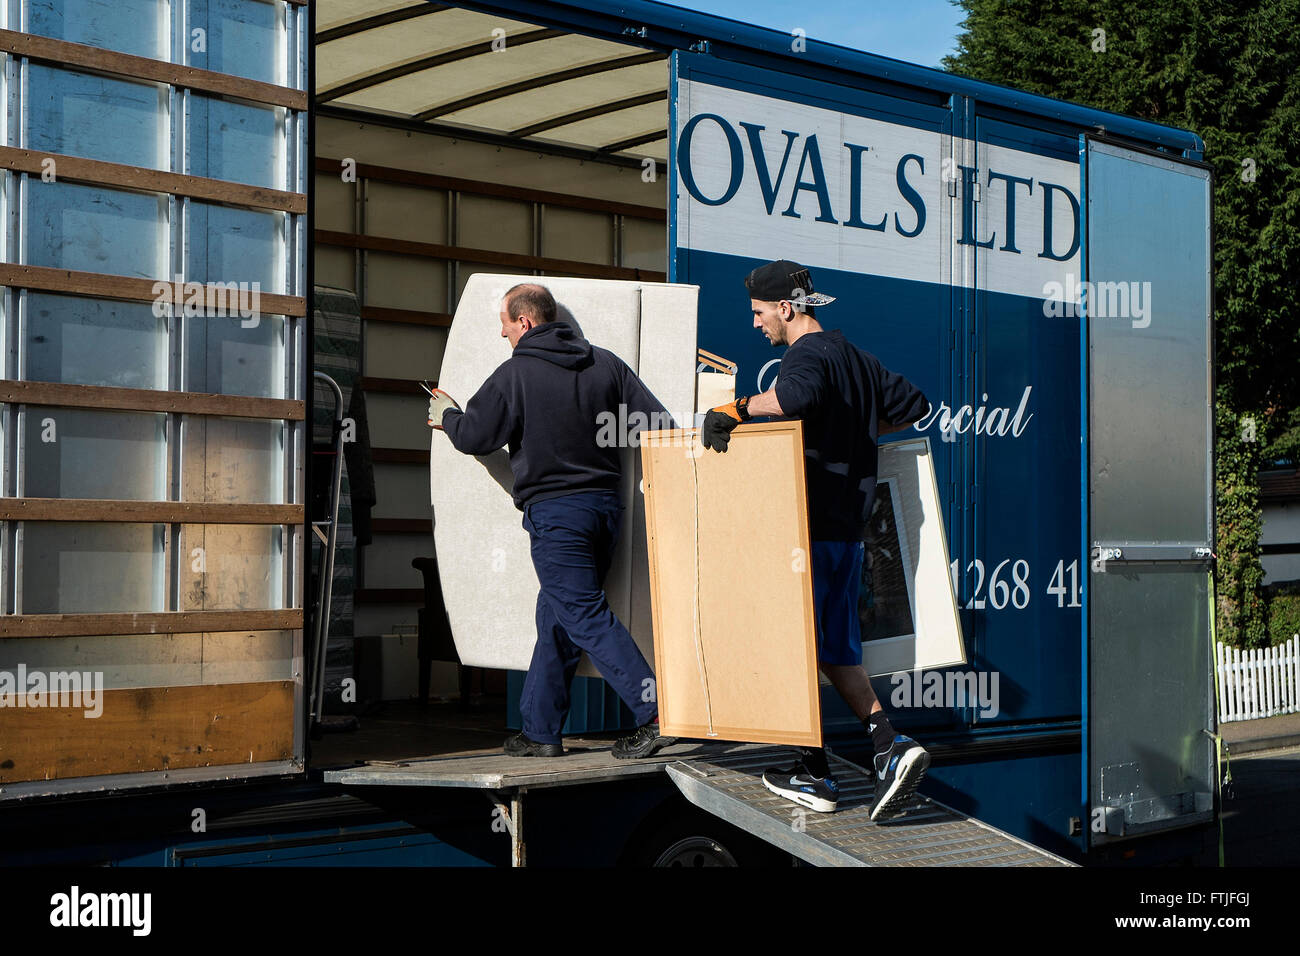 Removal men loading household items into a removal van. - Stock Image